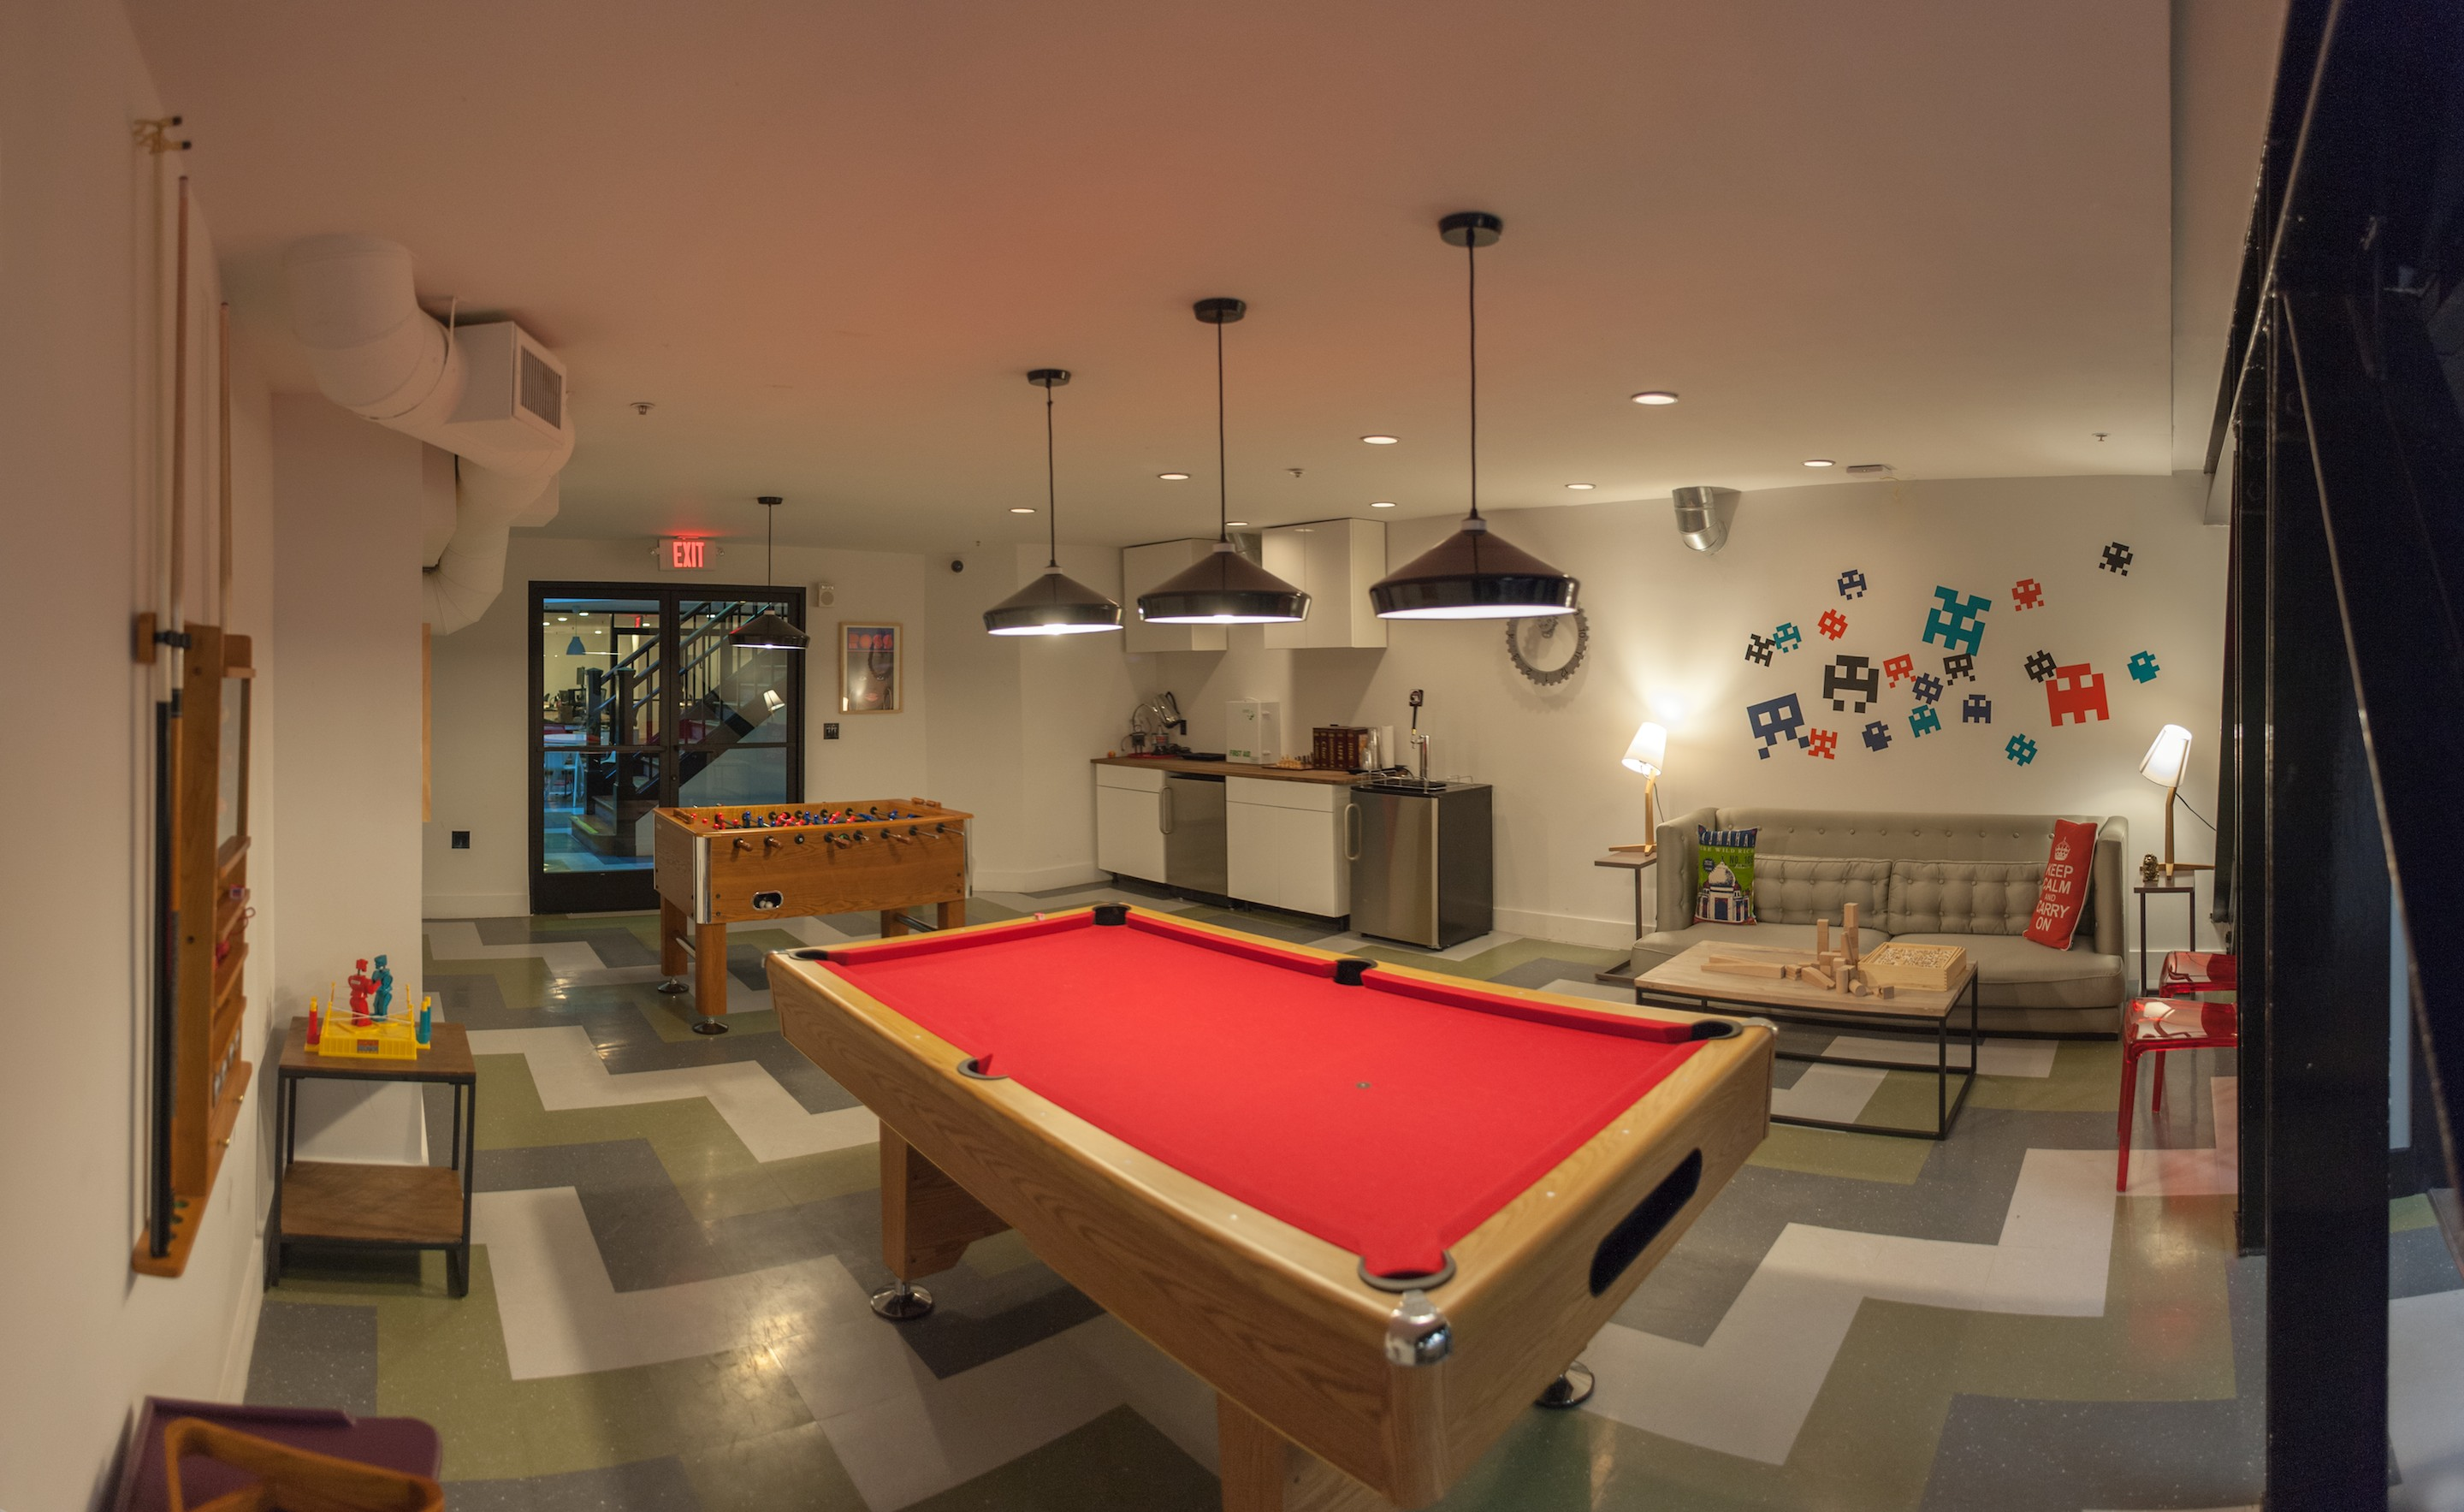 Wework Lounge Pool Table Foosball And Beer 2 It S Just